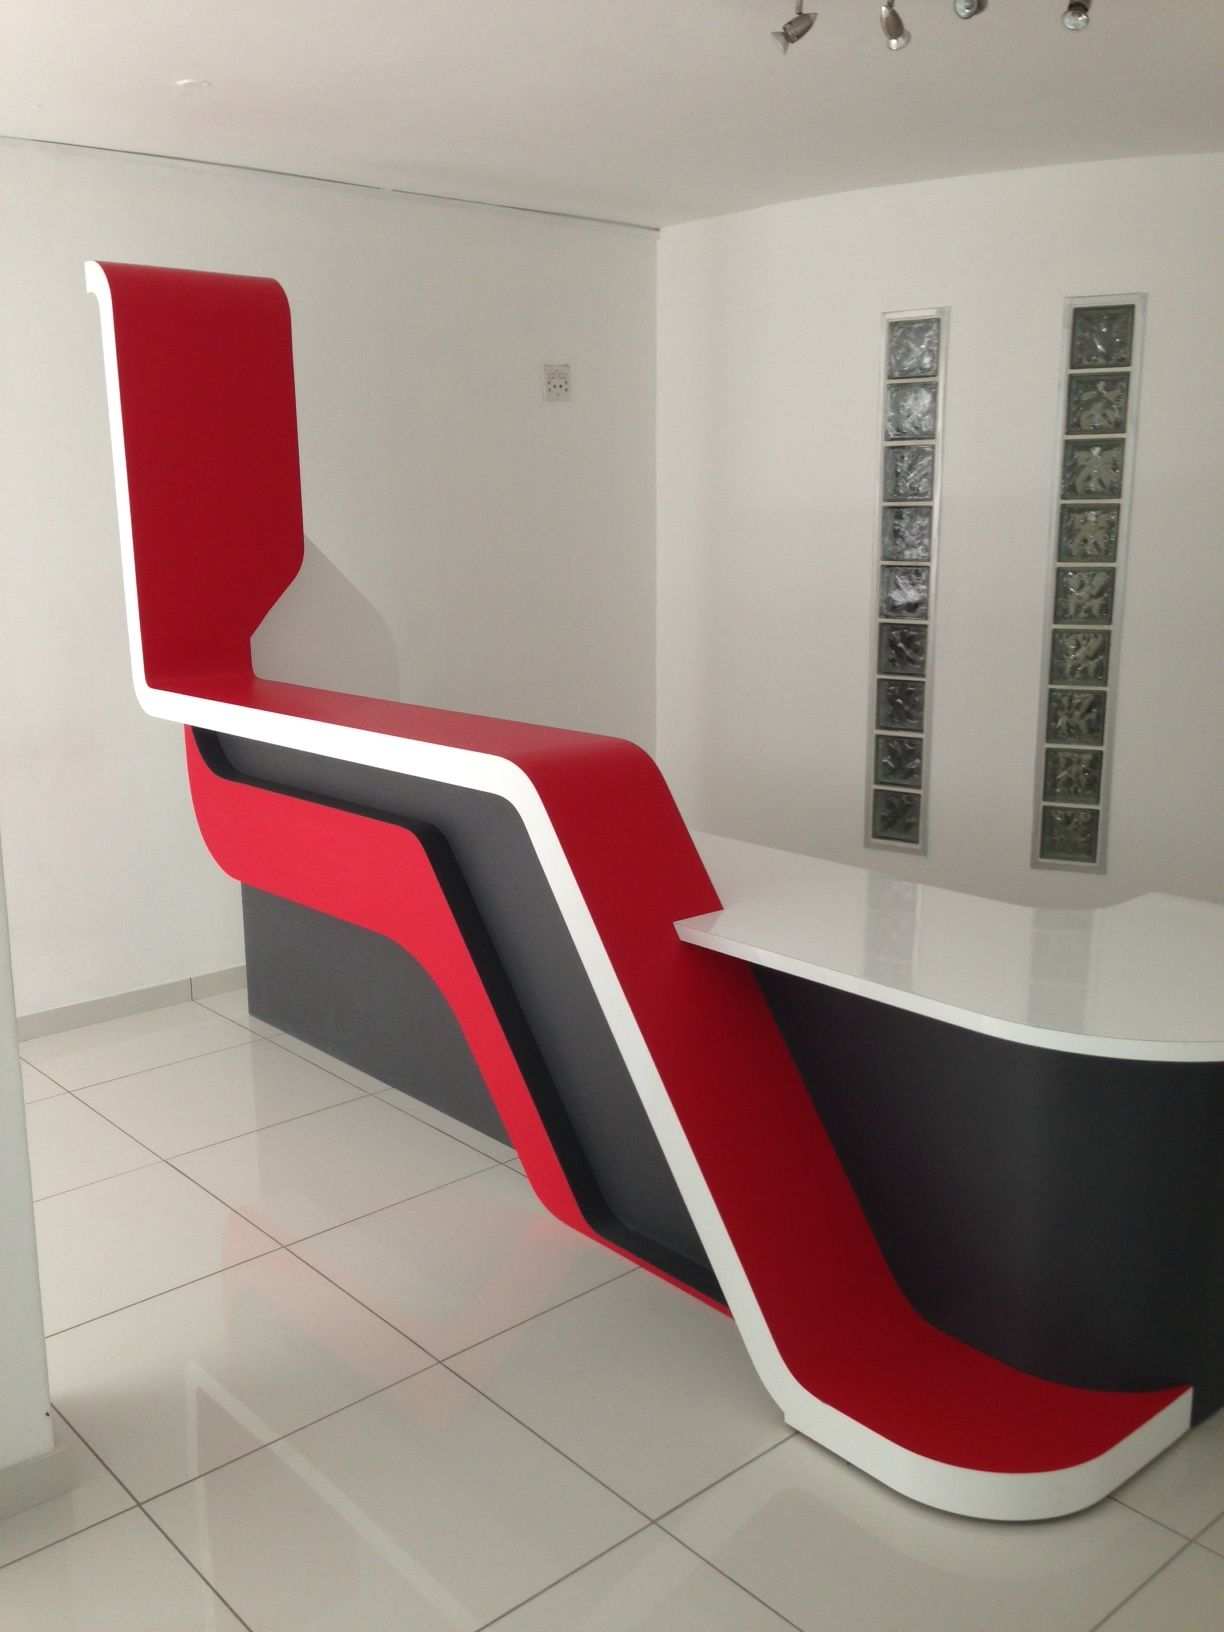 New Reception Counter Designed And Built Using Kydex